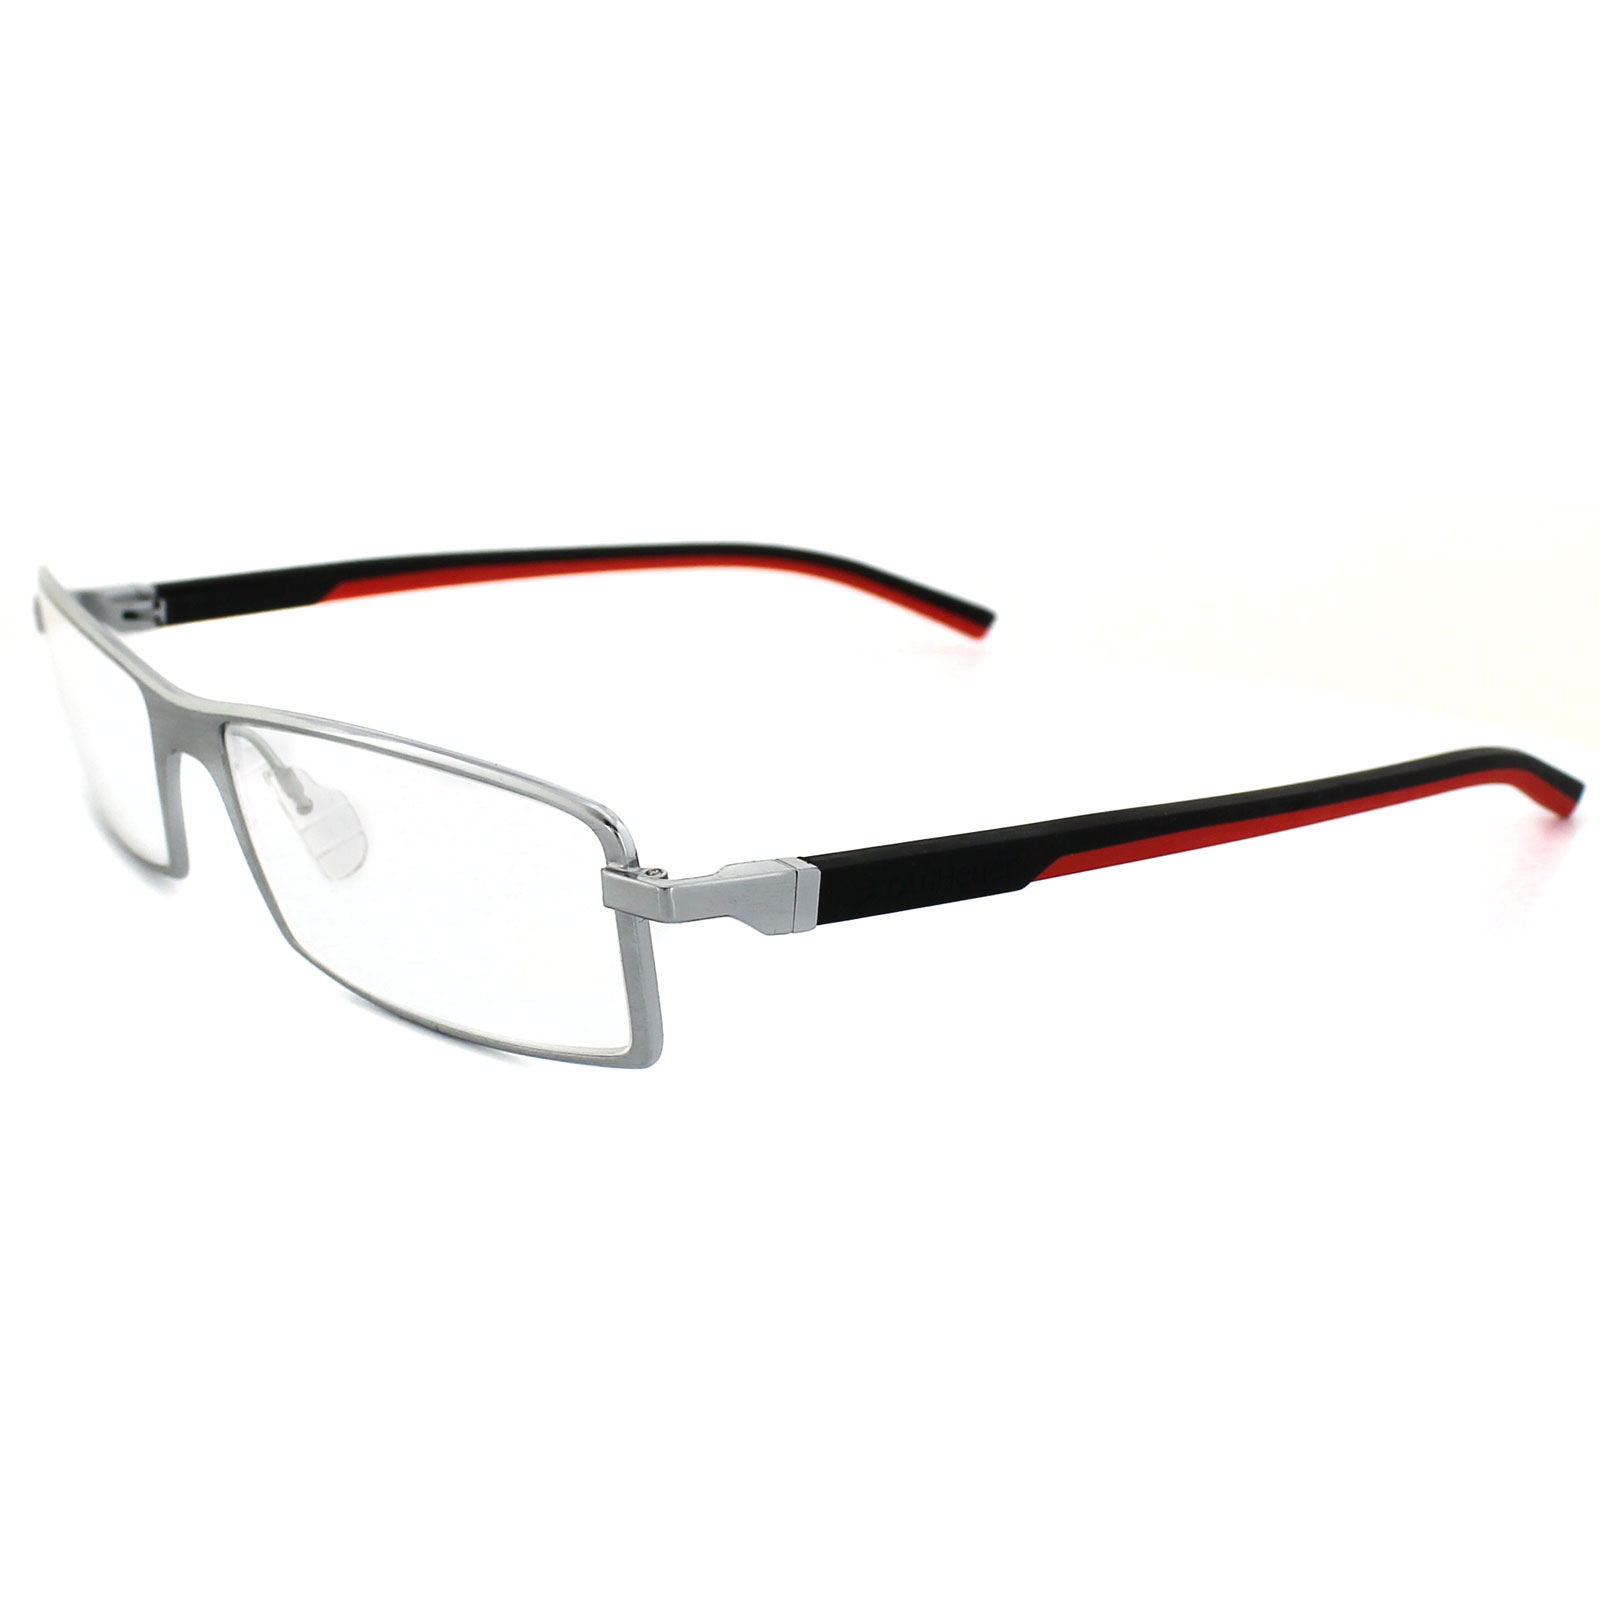 Cheap Tag Heuer Automatic 0802 Frames - Discounted Sunglasses